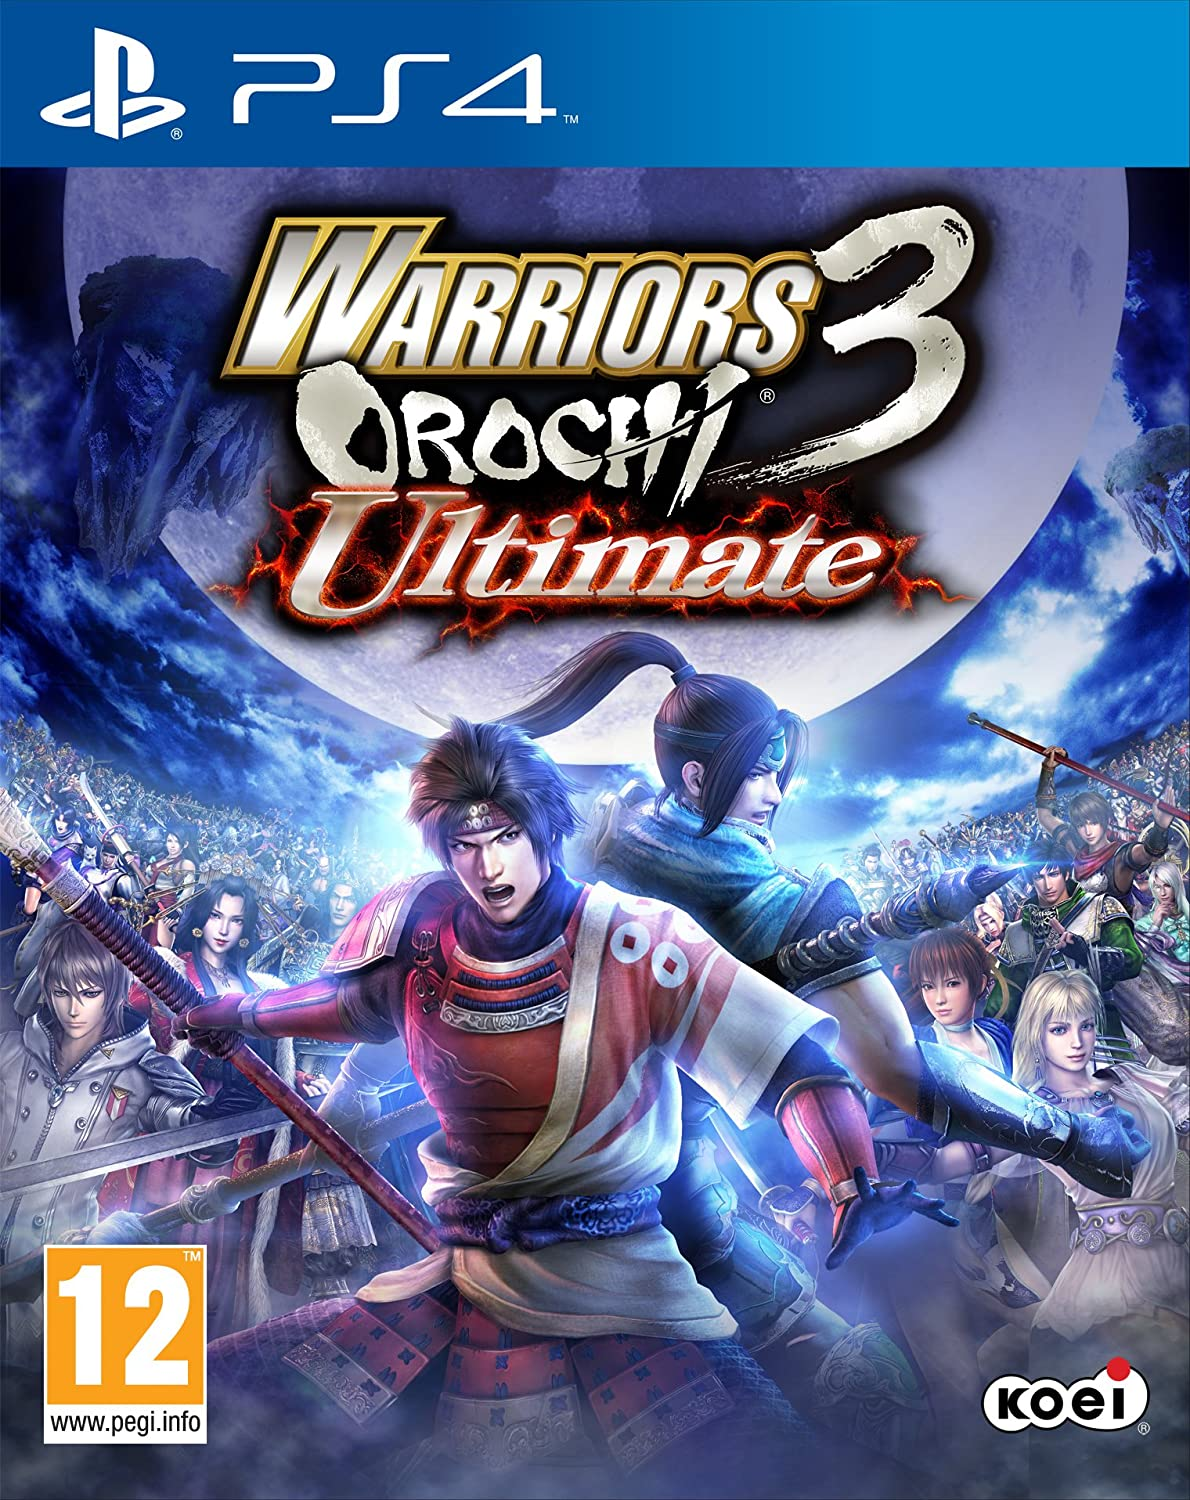 Amazon.com: Warriors Orochi 3 Ultimate /ps4: Video Games